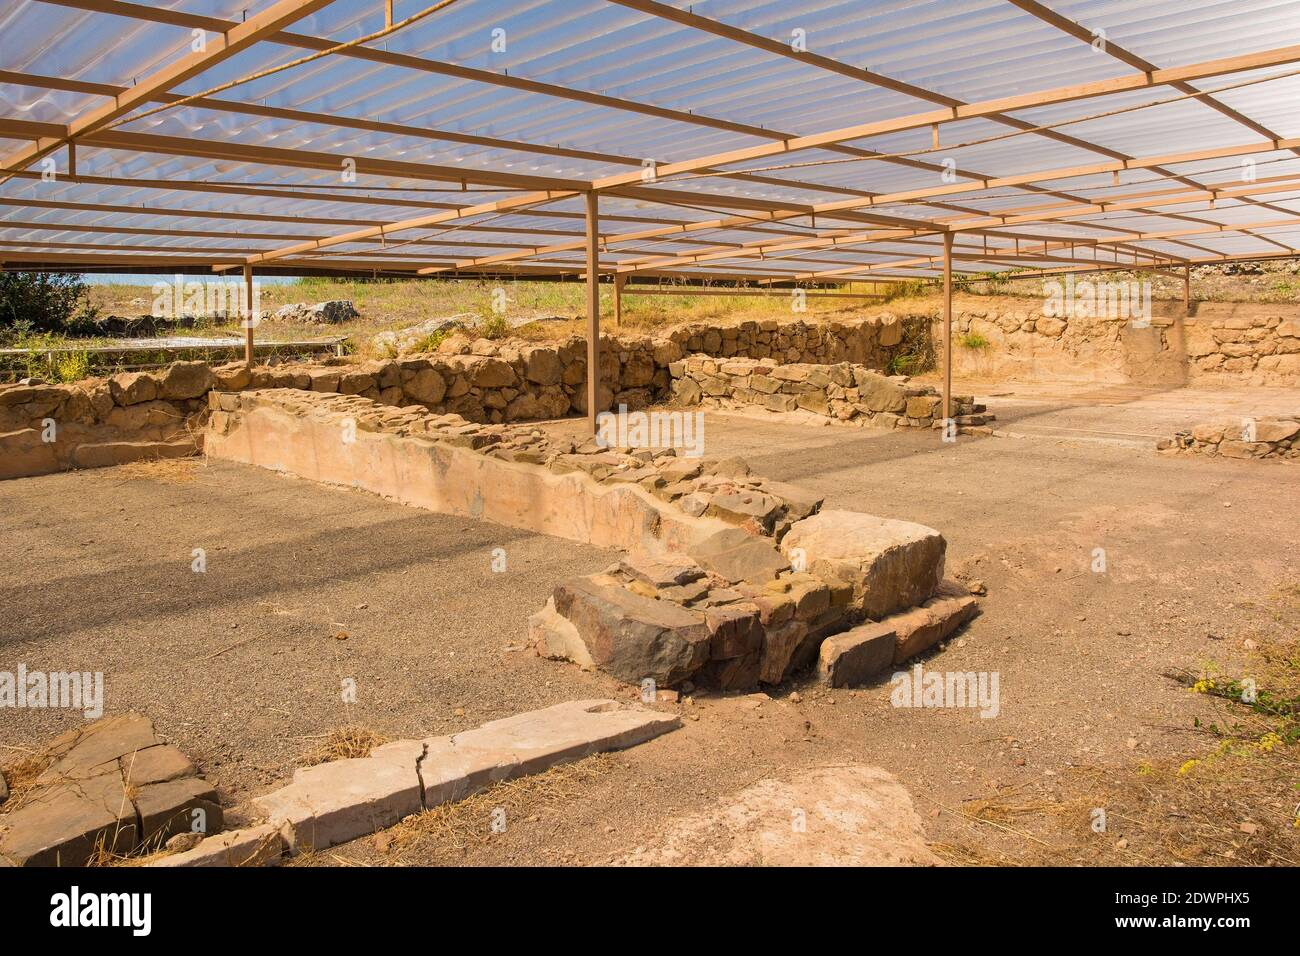 Grosseto, Italy - September 4th 2020. The ruins of the Hellenistic House in Roselle or Rusellae, an ancient Etruscan and Roman city in Tuscany. Stock Photo